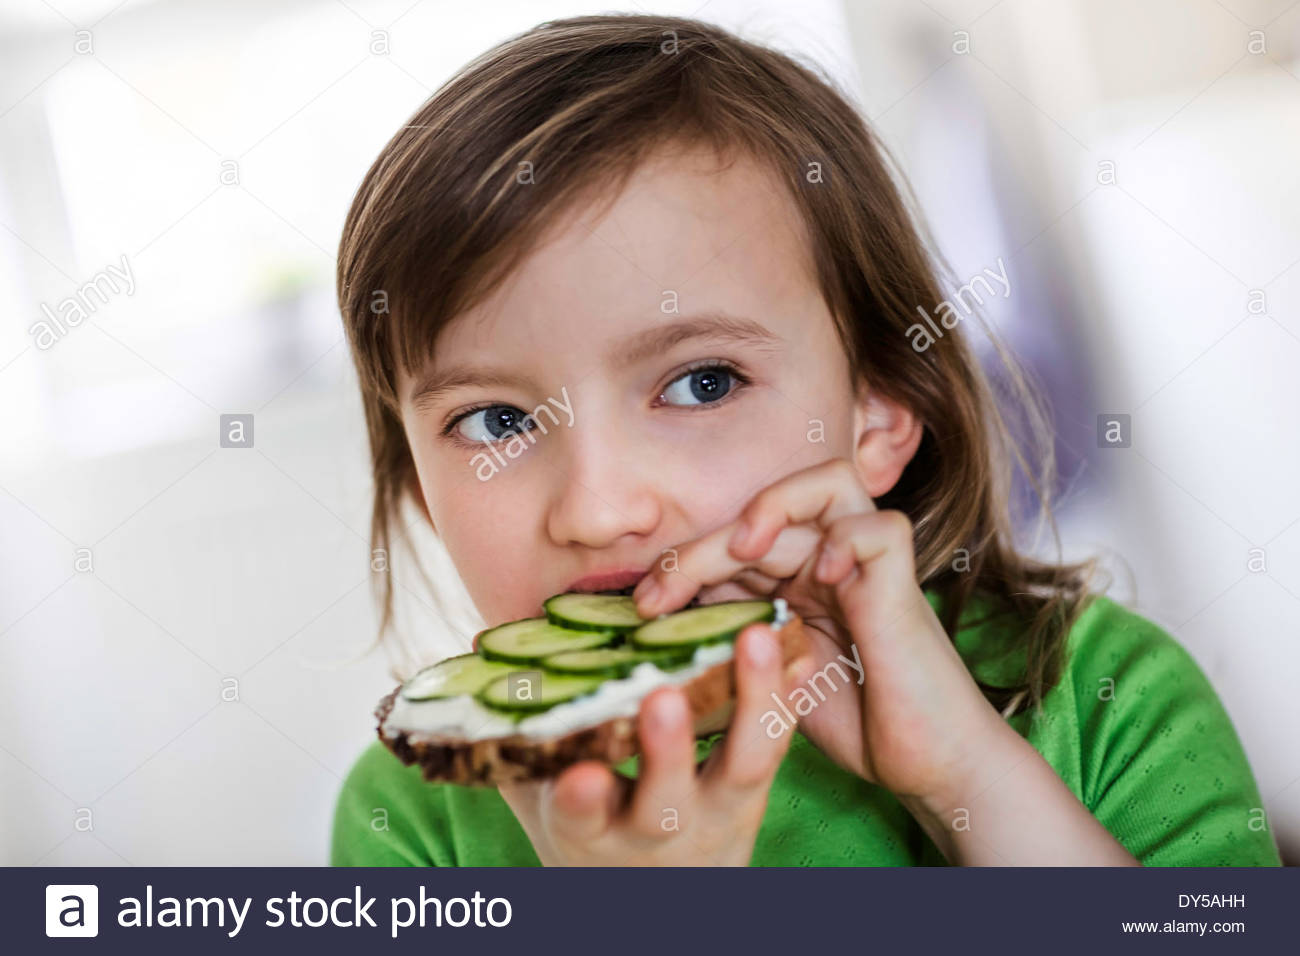 Girl eating a cheese and cucumber open sandwich - Stock Image